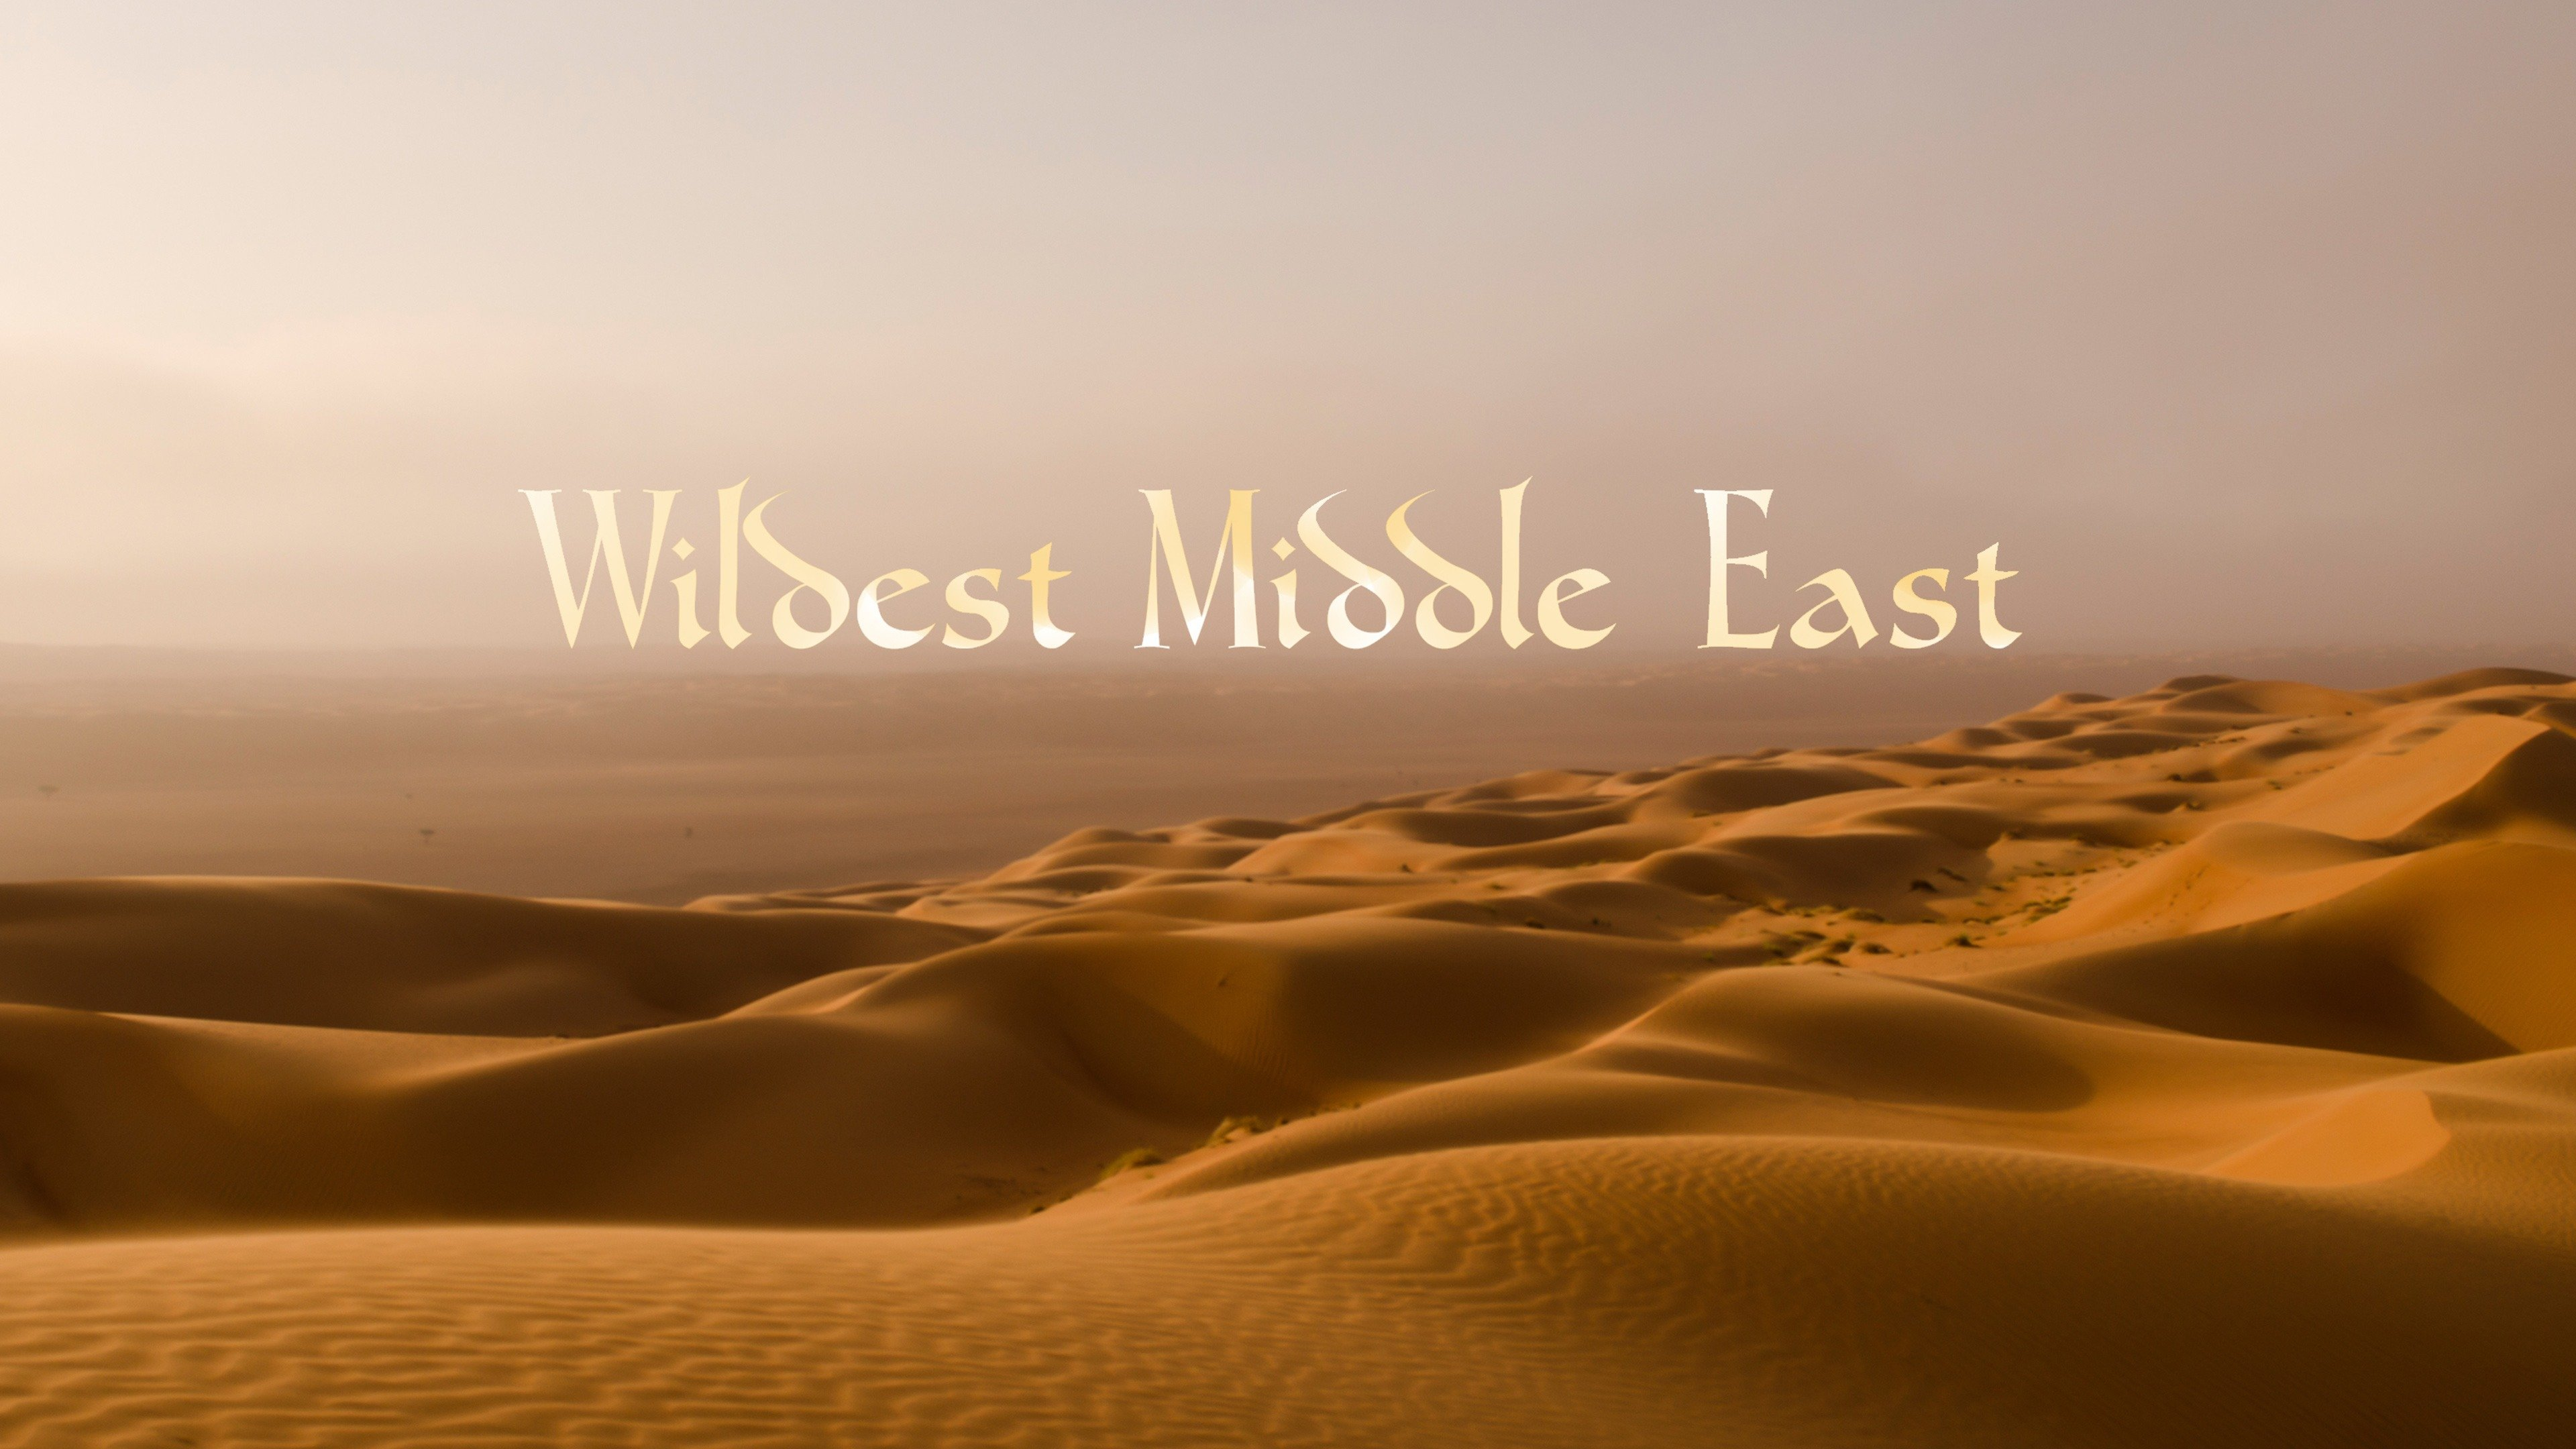 Wildest Middle East